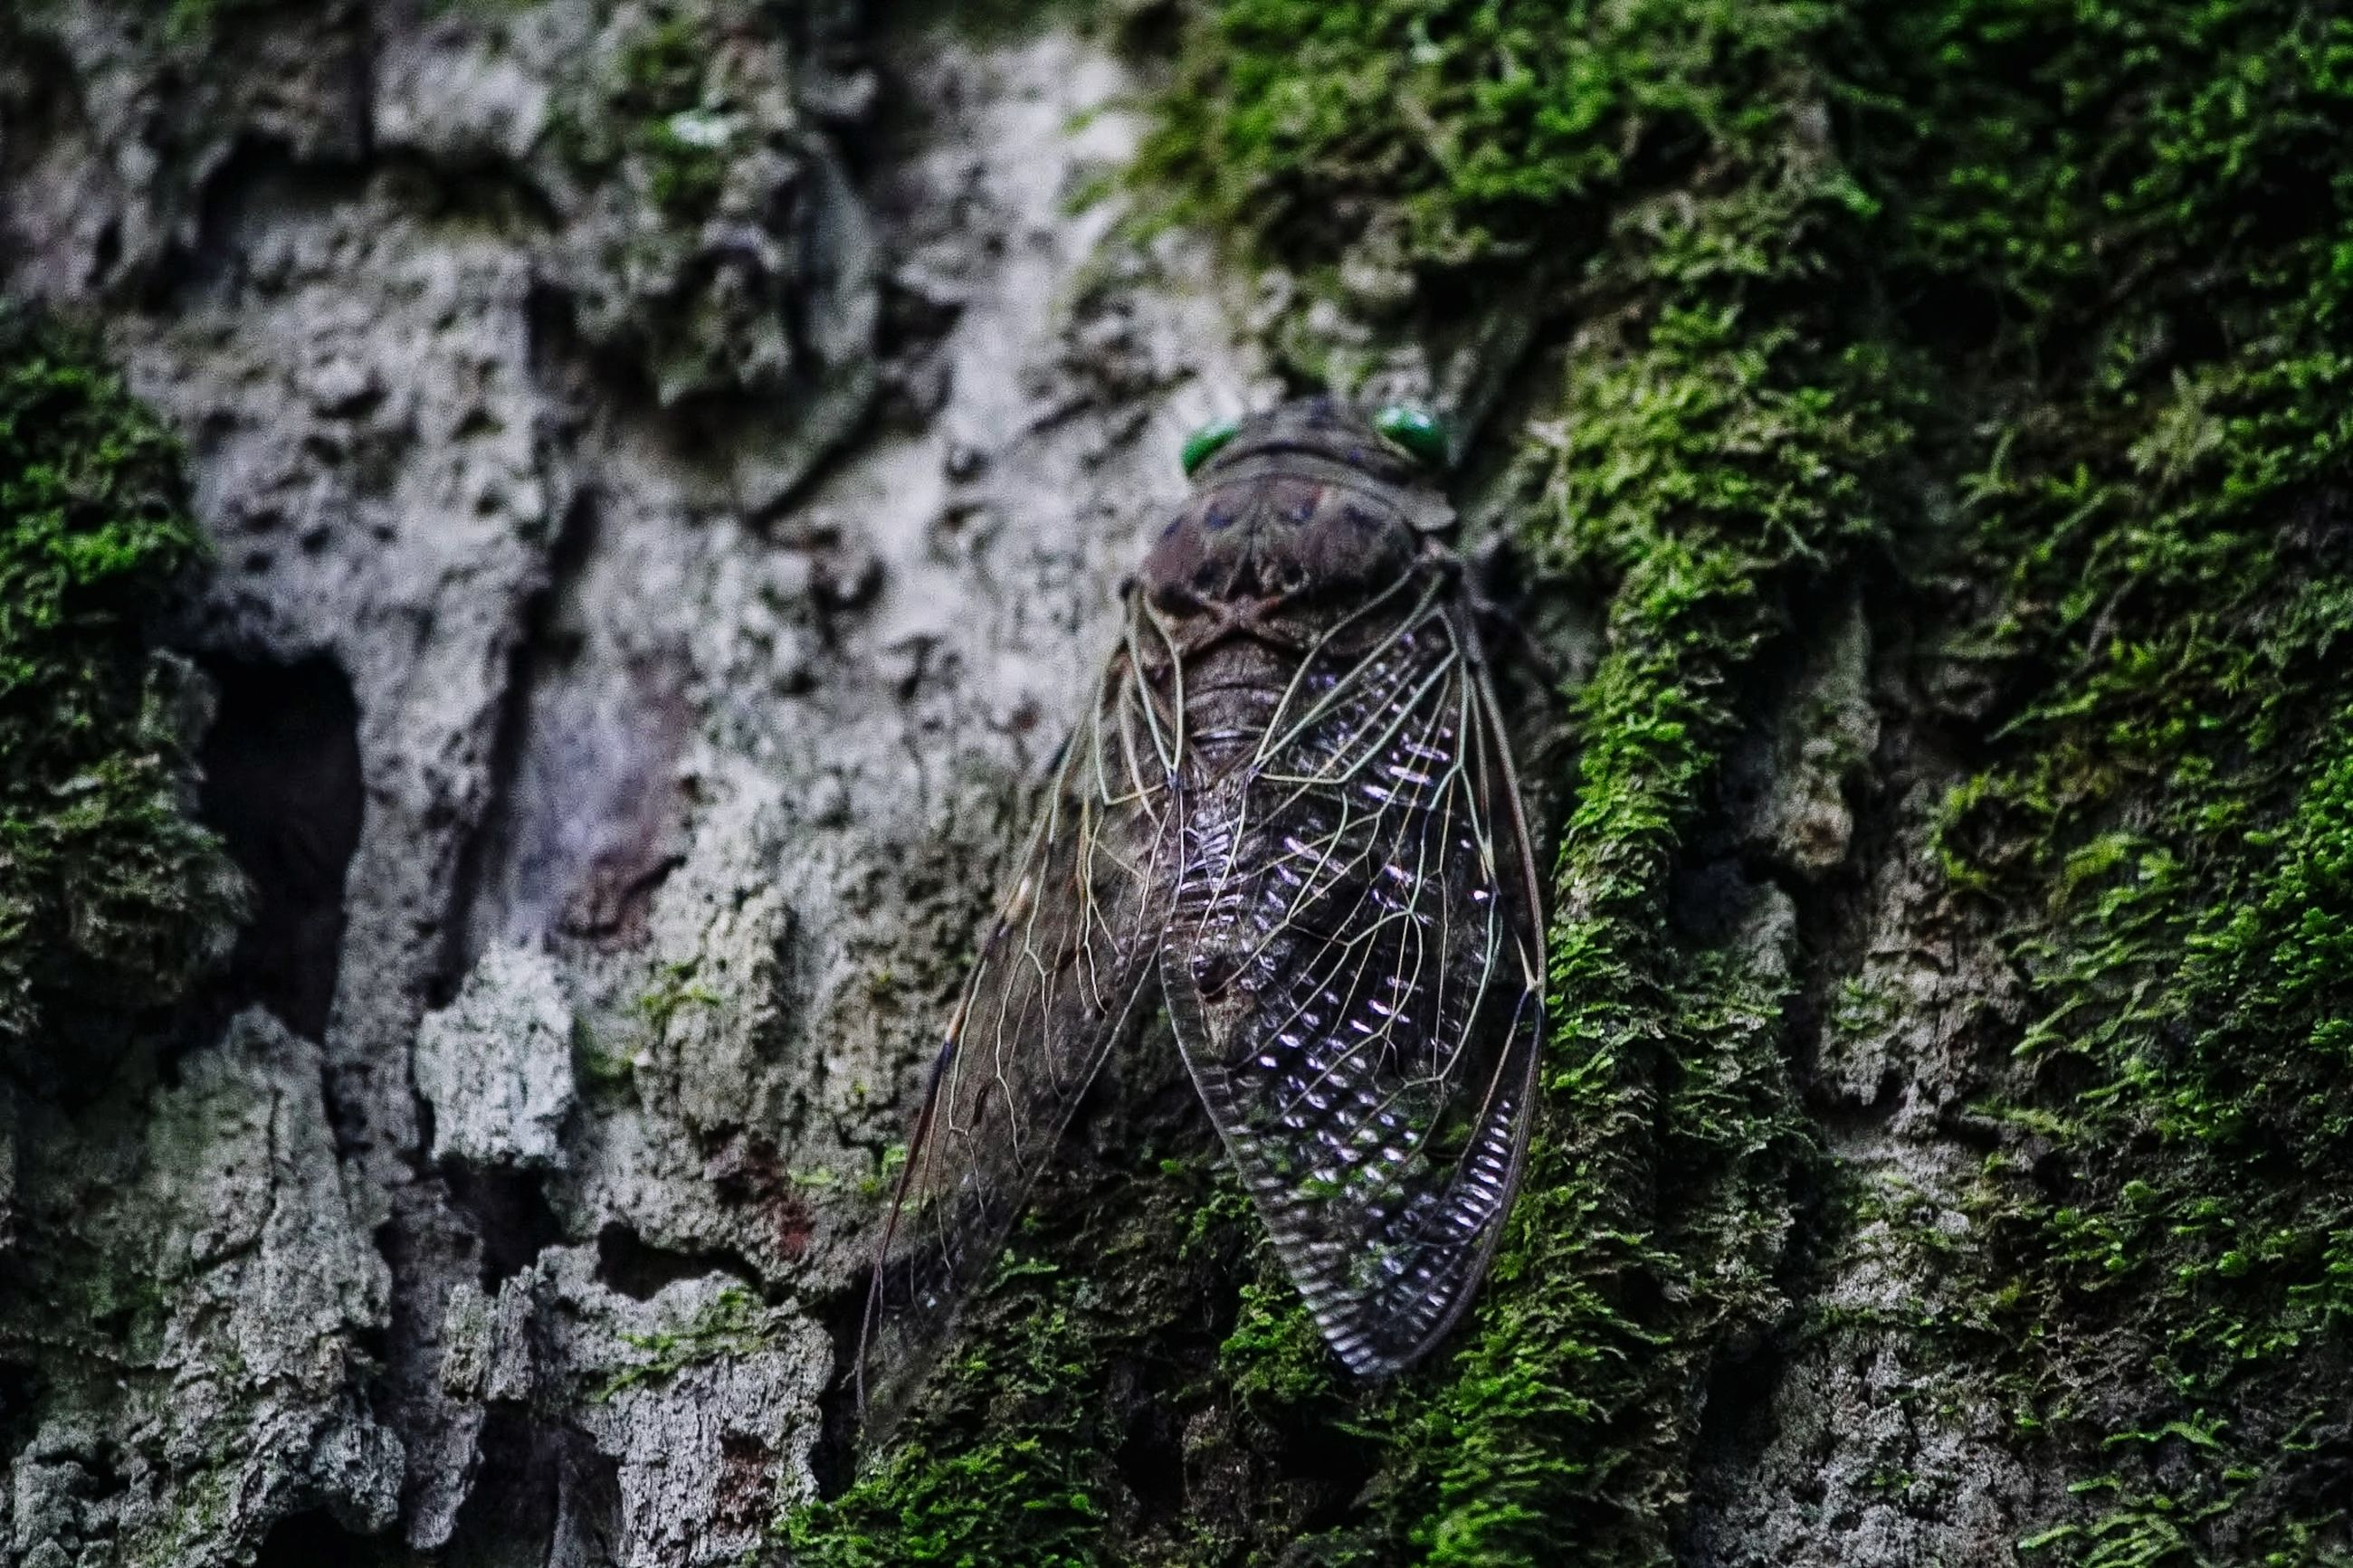 tree, no people, plant, nature, day, textured, moss, focus on foreground, tree trunk, trunk, outdoors, selective focus, growth, close-up, rock, solid, tranquility, rough, rock - object, beauty in nature, bark